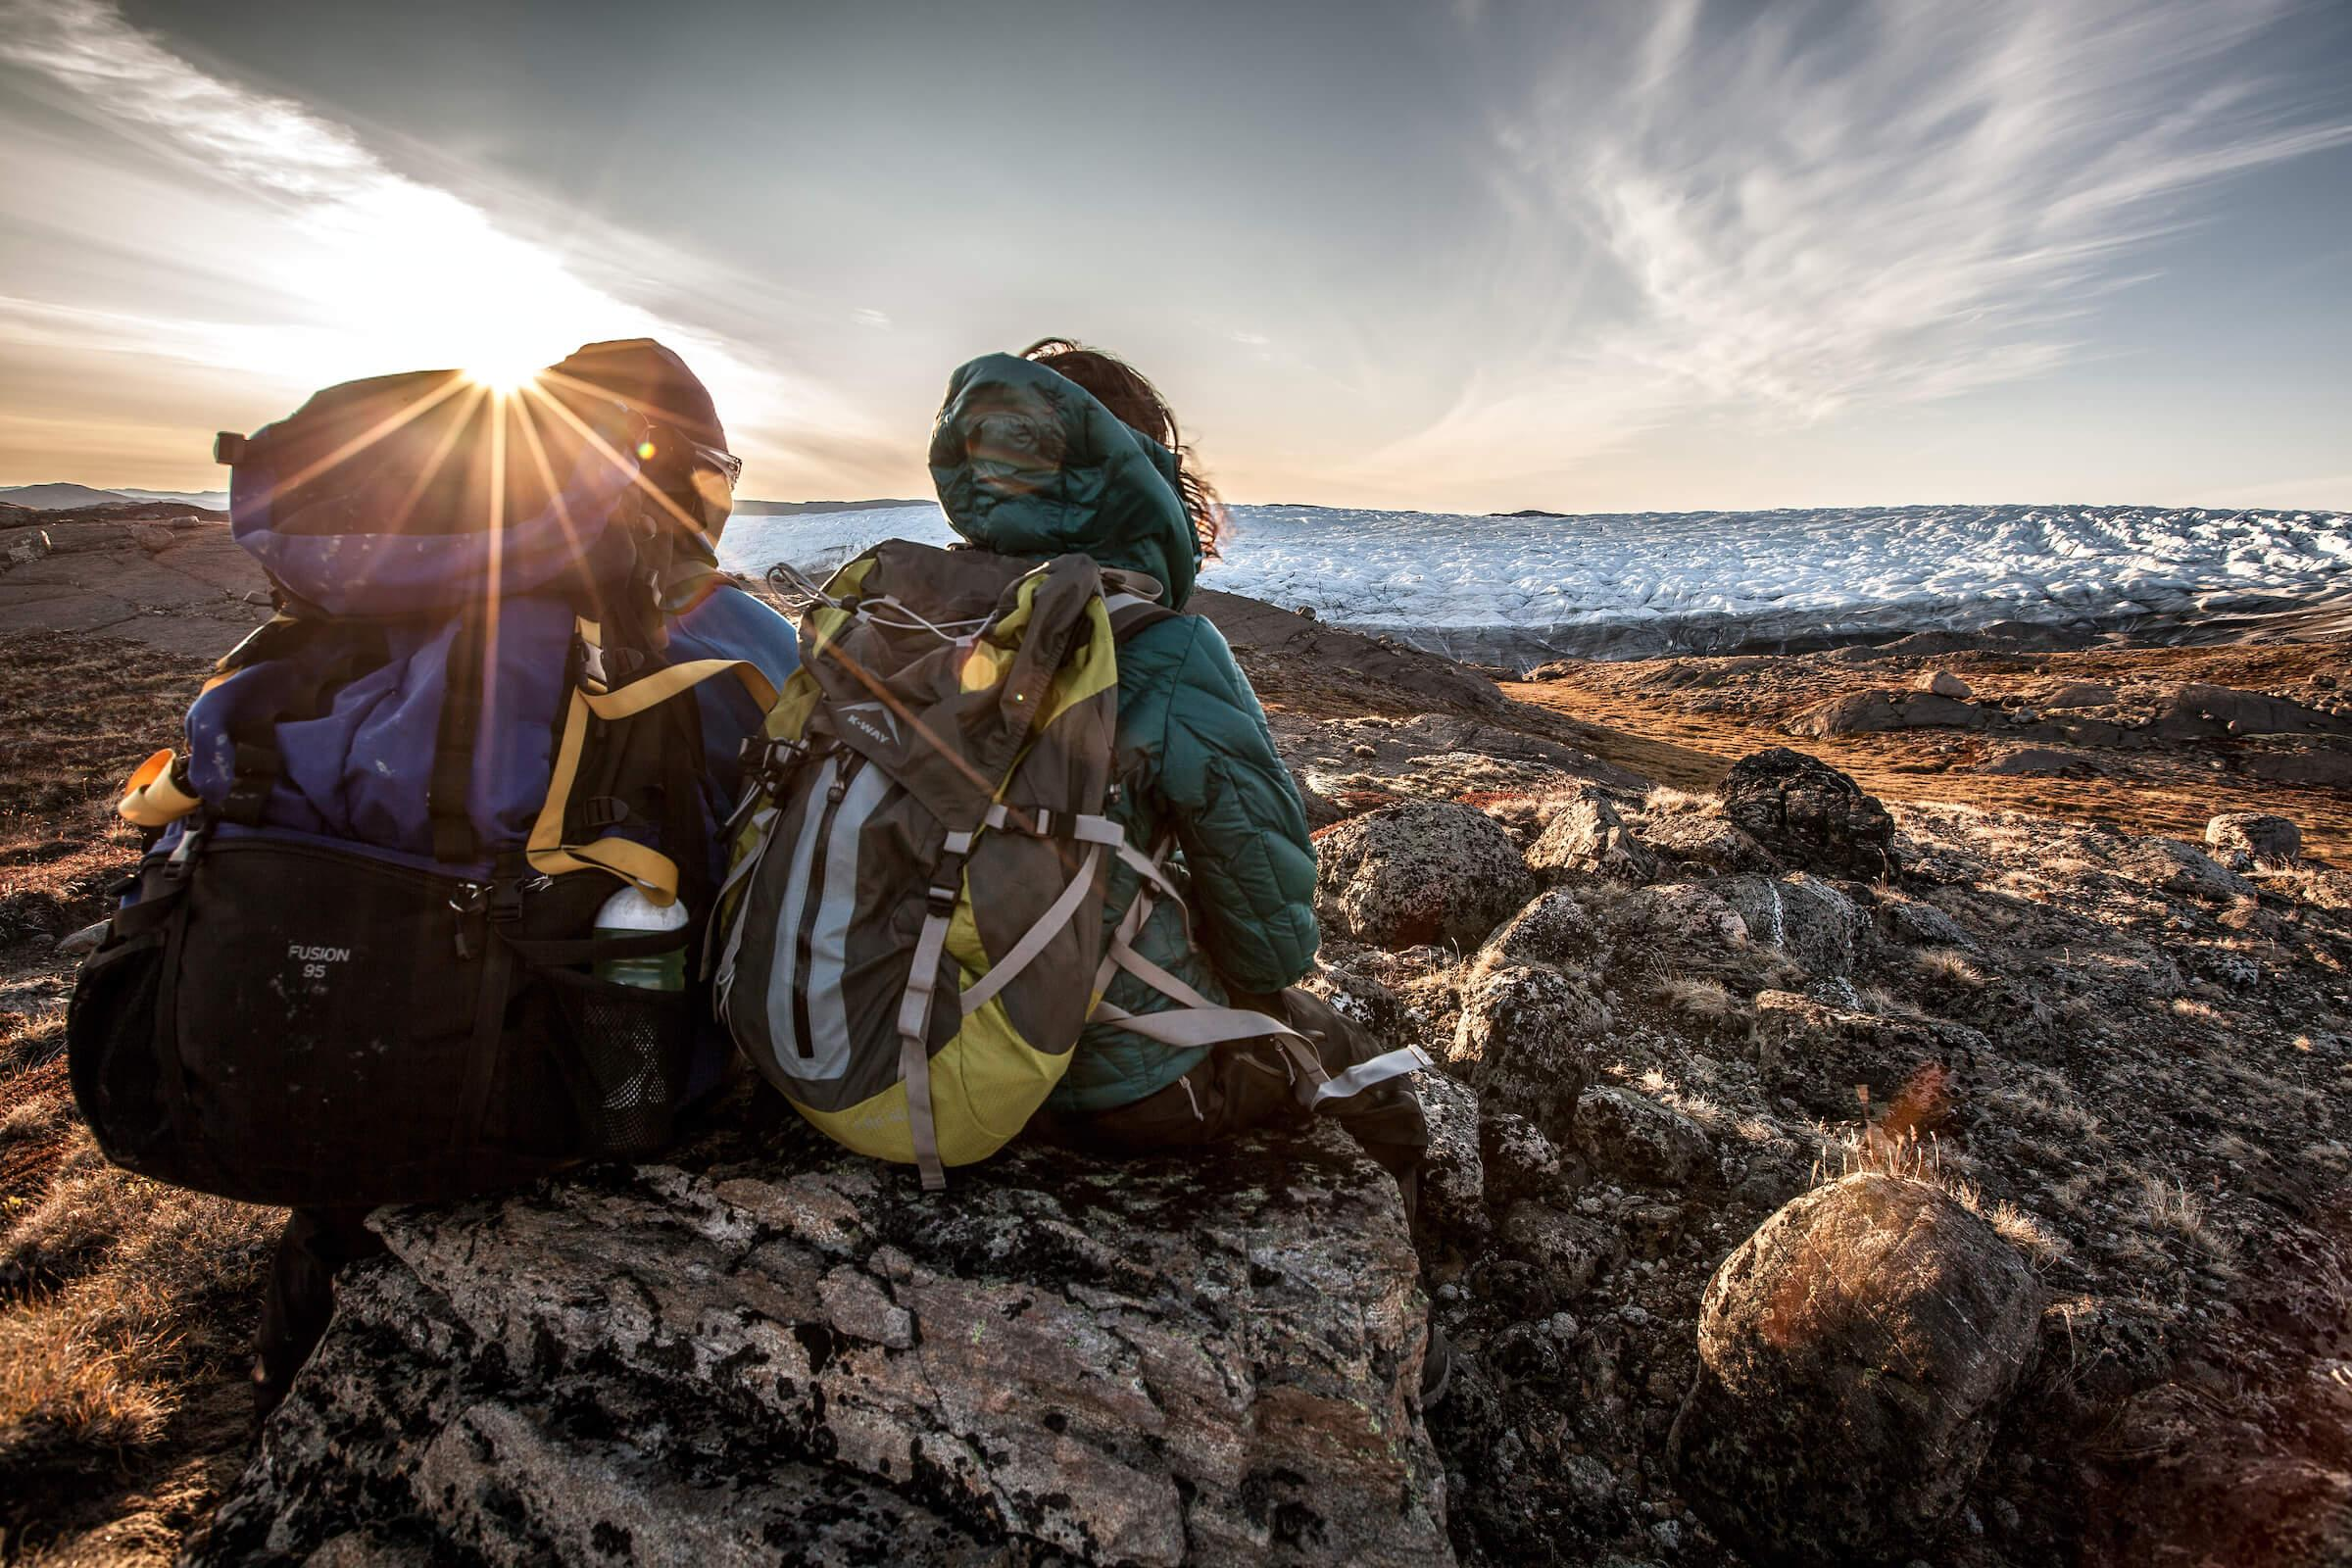 Two hikers enjoying the sunset over the edge of the Greenland Ice Sheet near Kangerlussuaq. By Mads Pihl